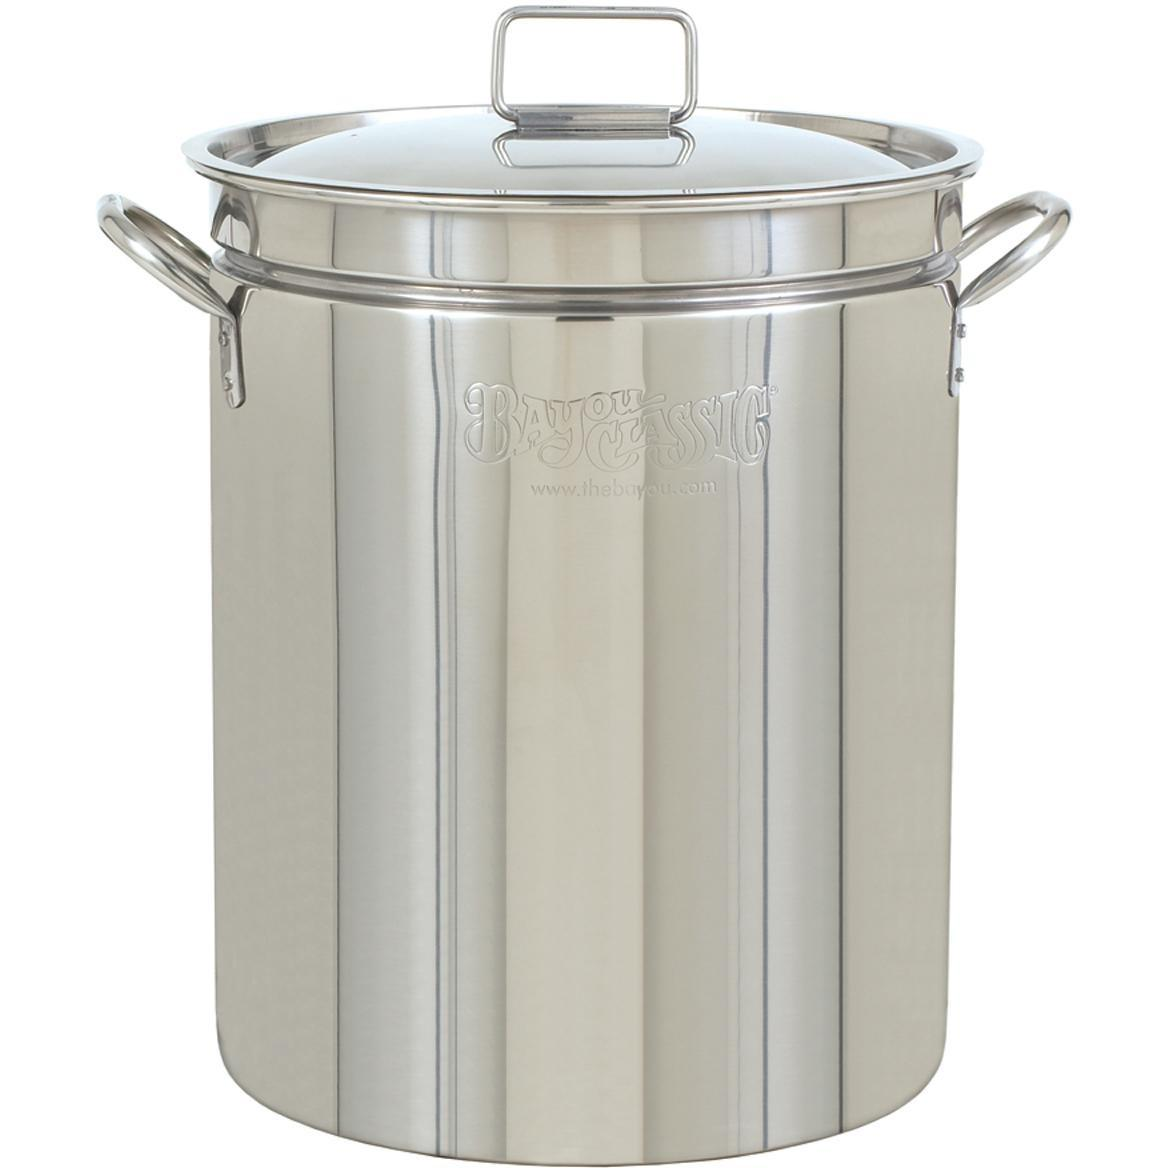 Bayou Classic Stainless Steel Stock Pot Vented